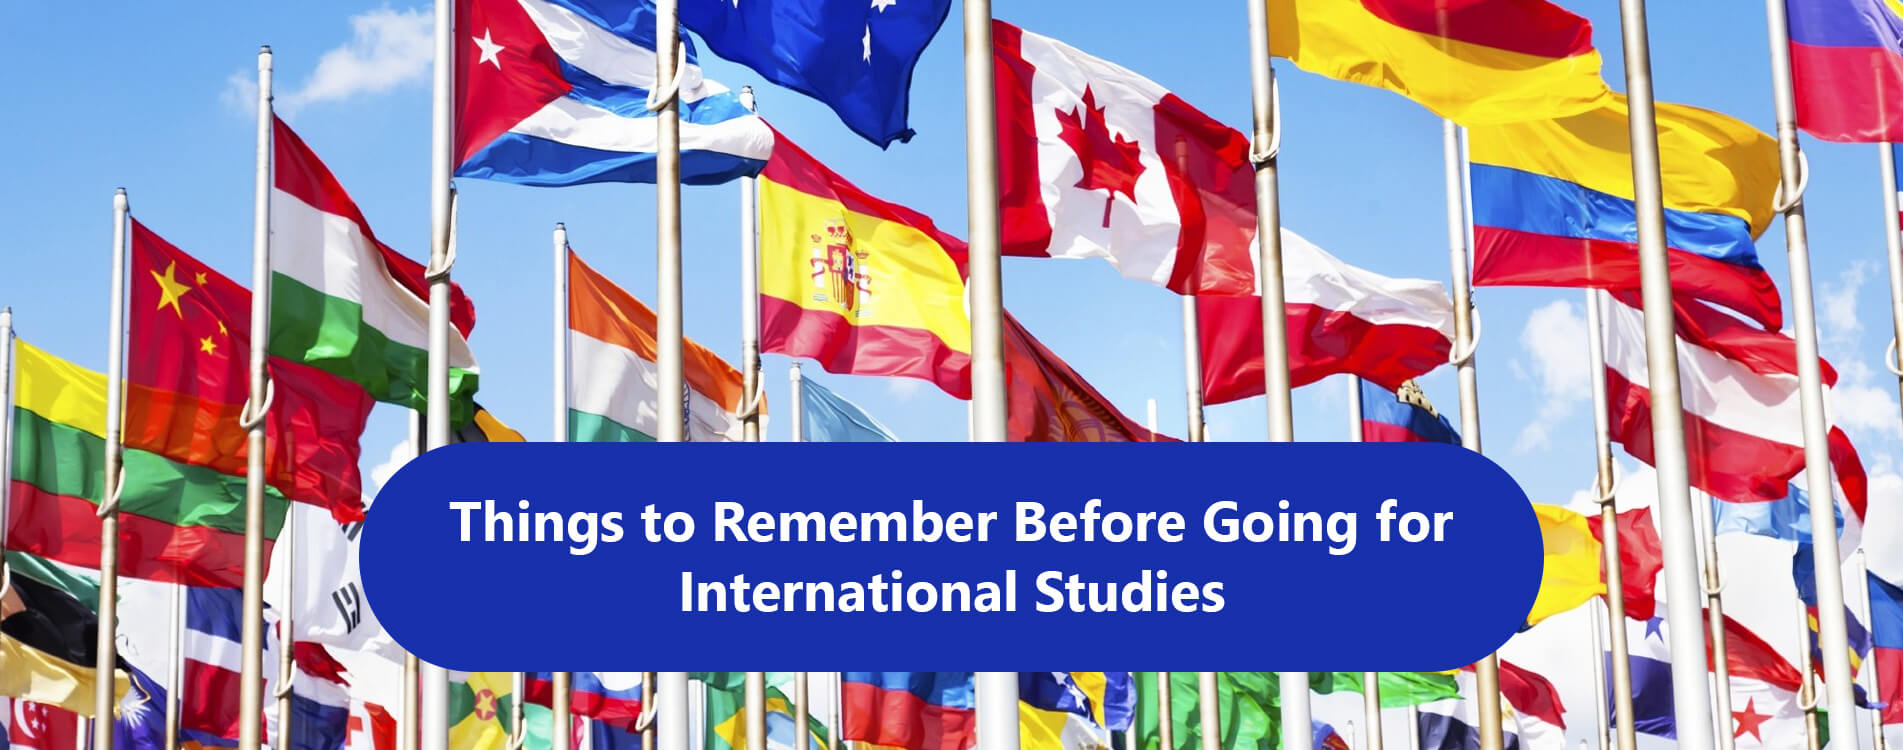 Things to Remember Before Going for International Studies